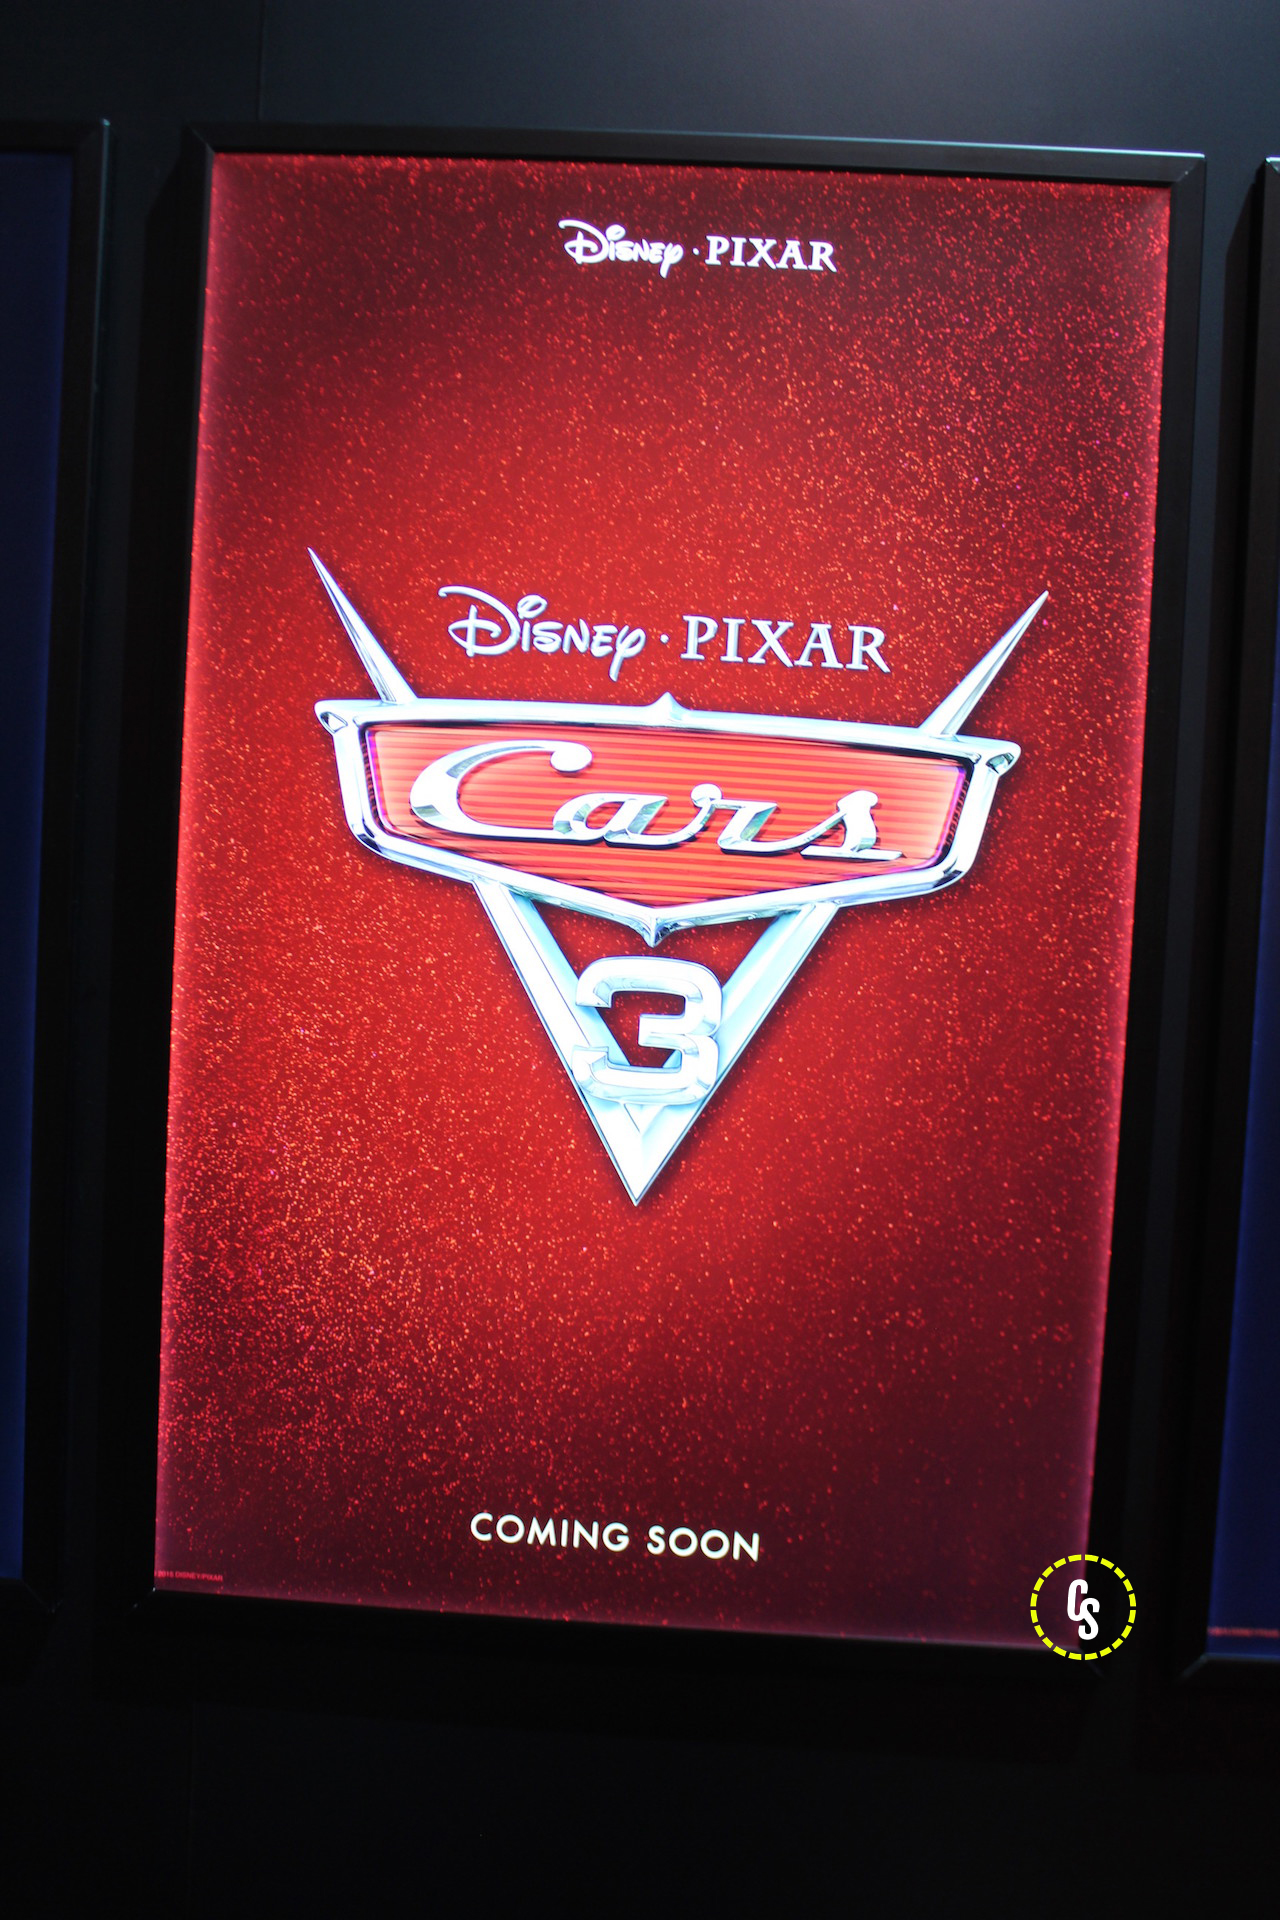 Cars 3 Wallpapers Movie Hq Cars 3 Pictures 4k Wallpapers 2019